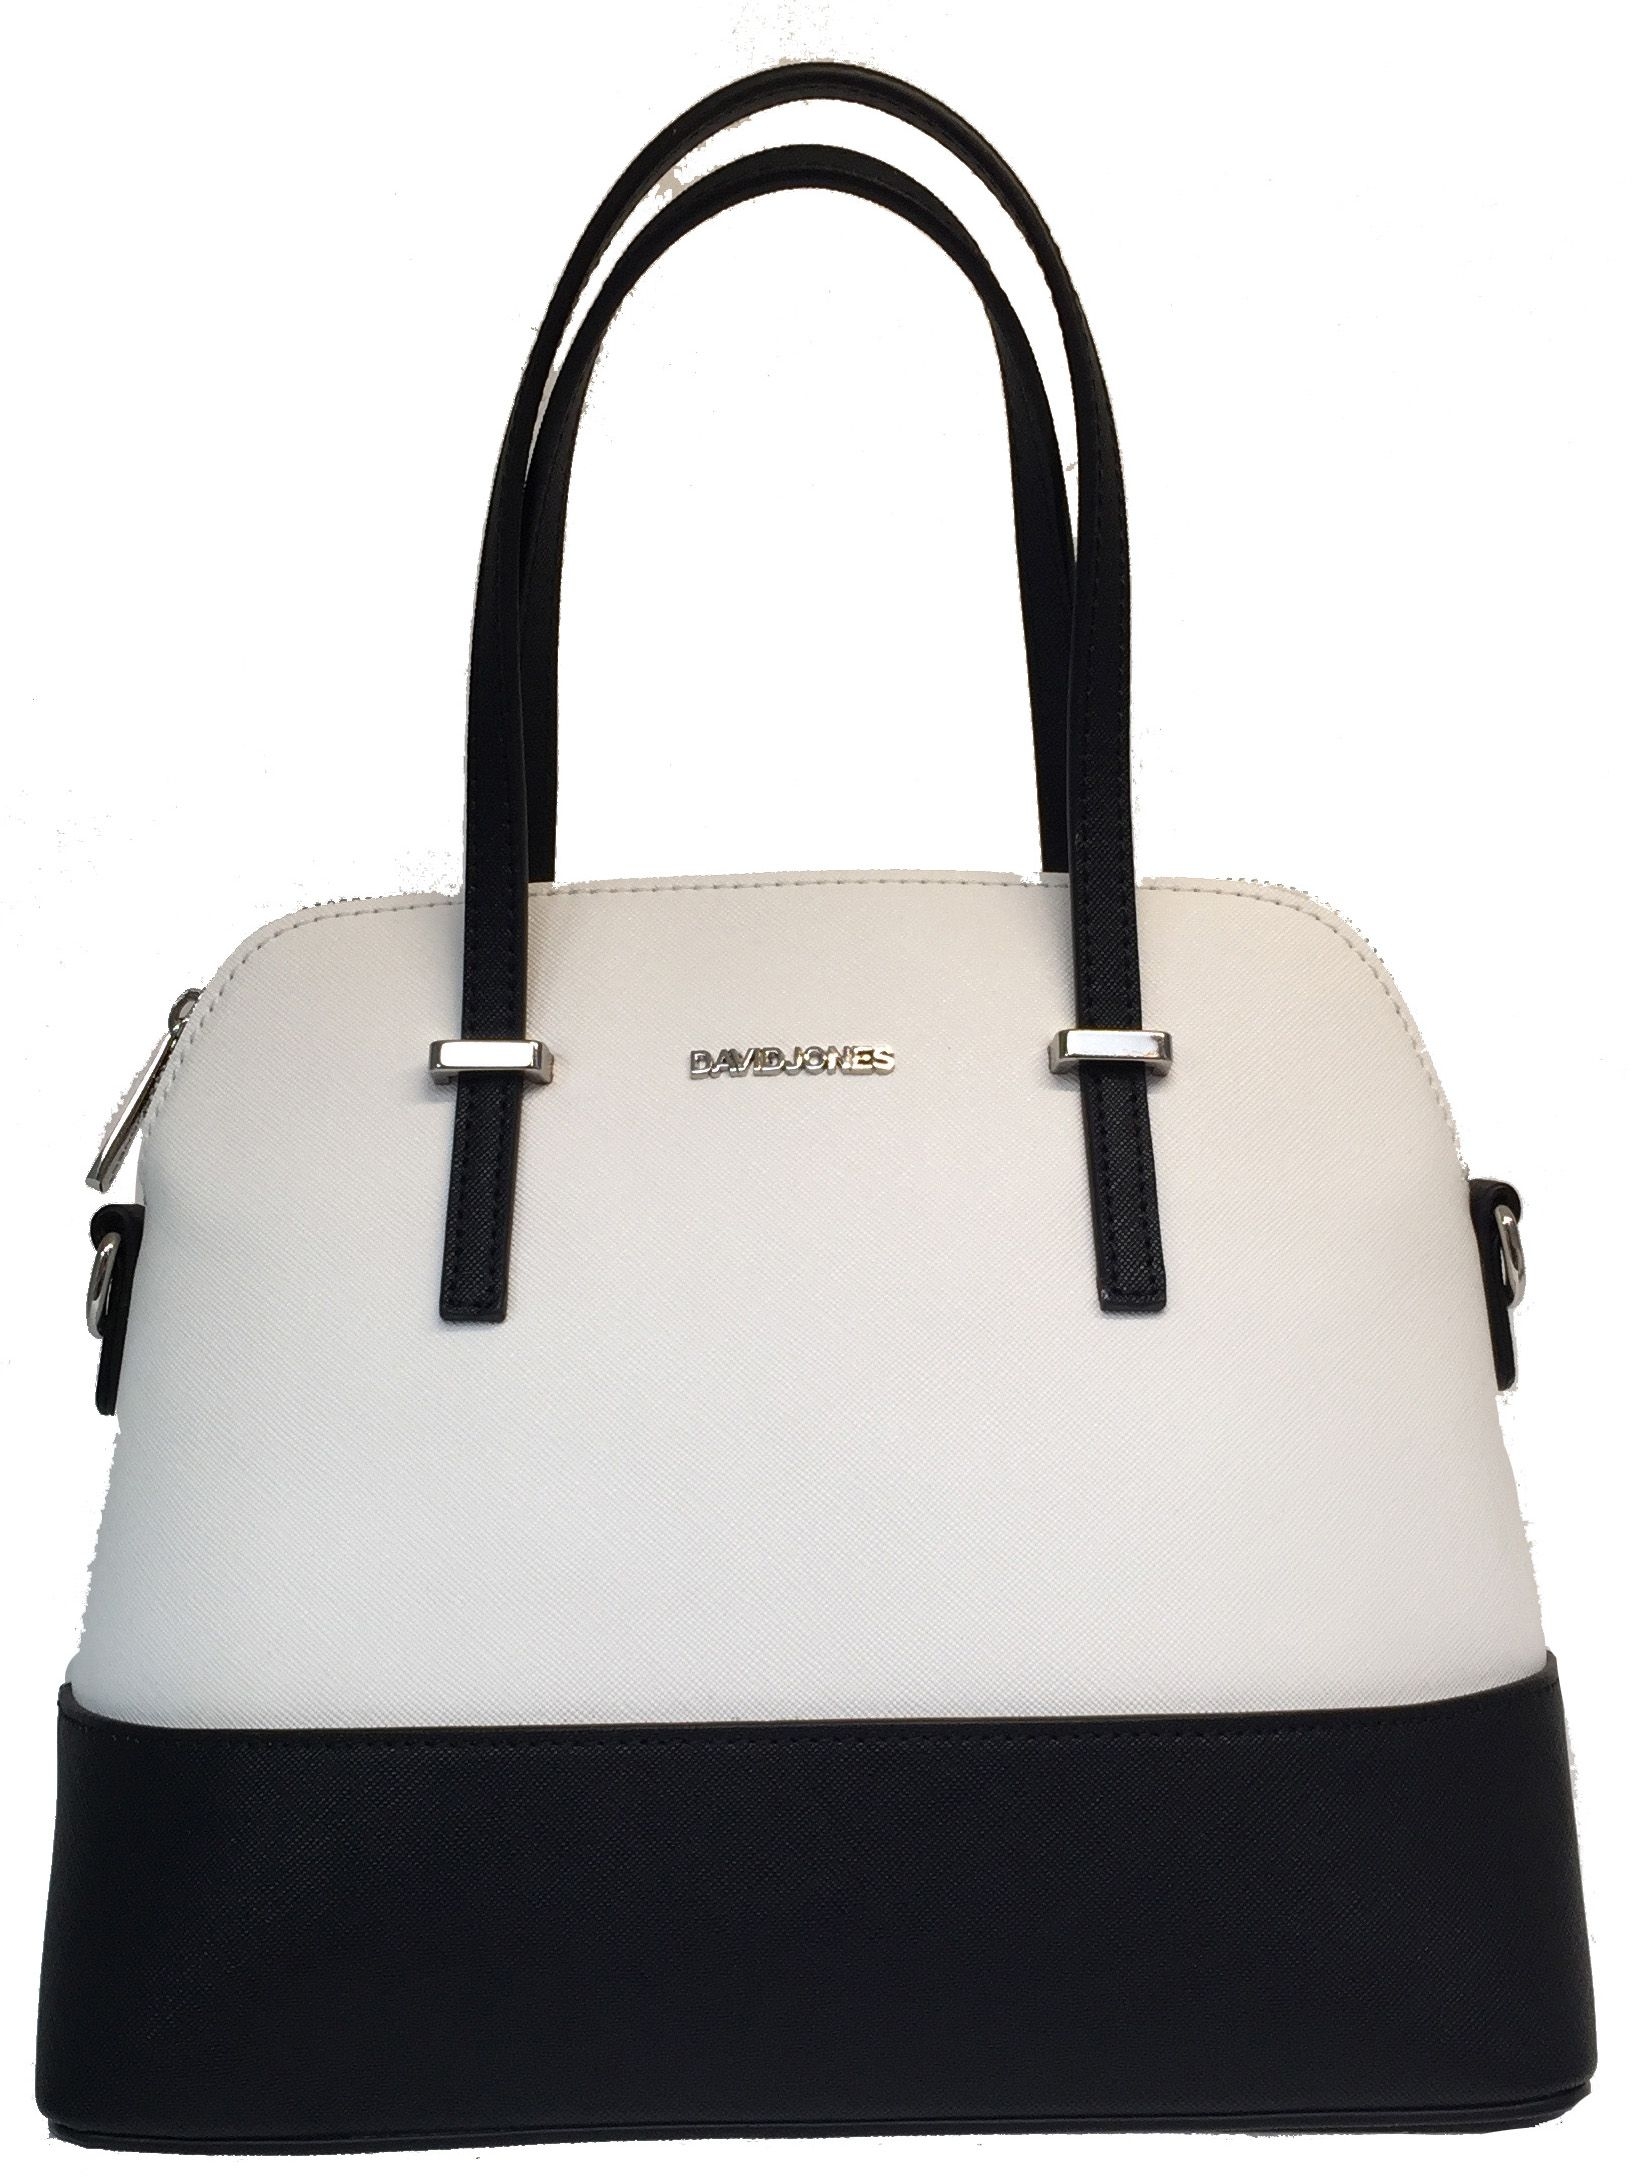 Fendi Bag David Jones